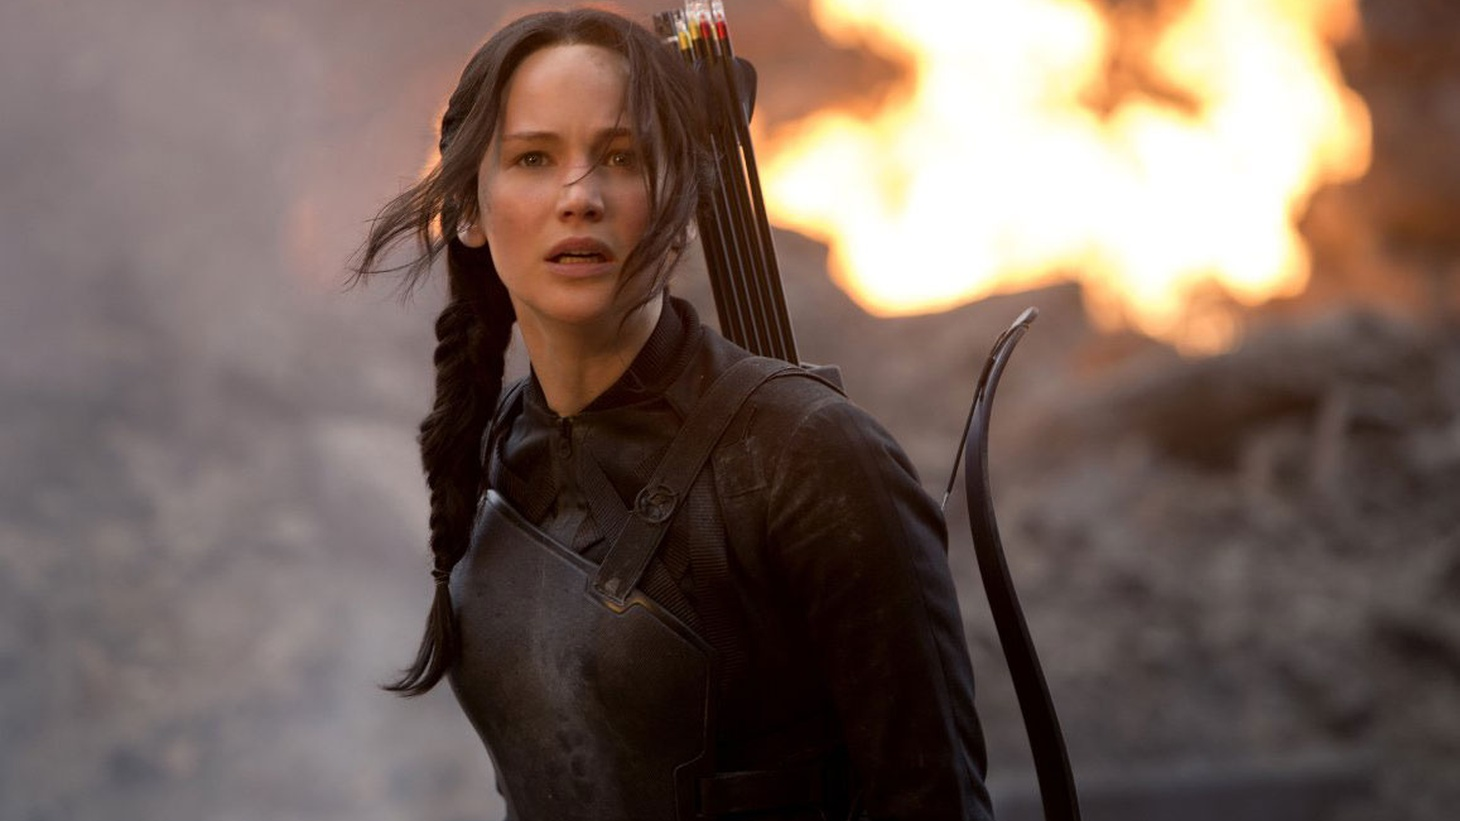 The Hunger Games: Mockingjay, Part 1 is a rare bird in its genre, an action adventure with an interesting mind and a resonant spirit.